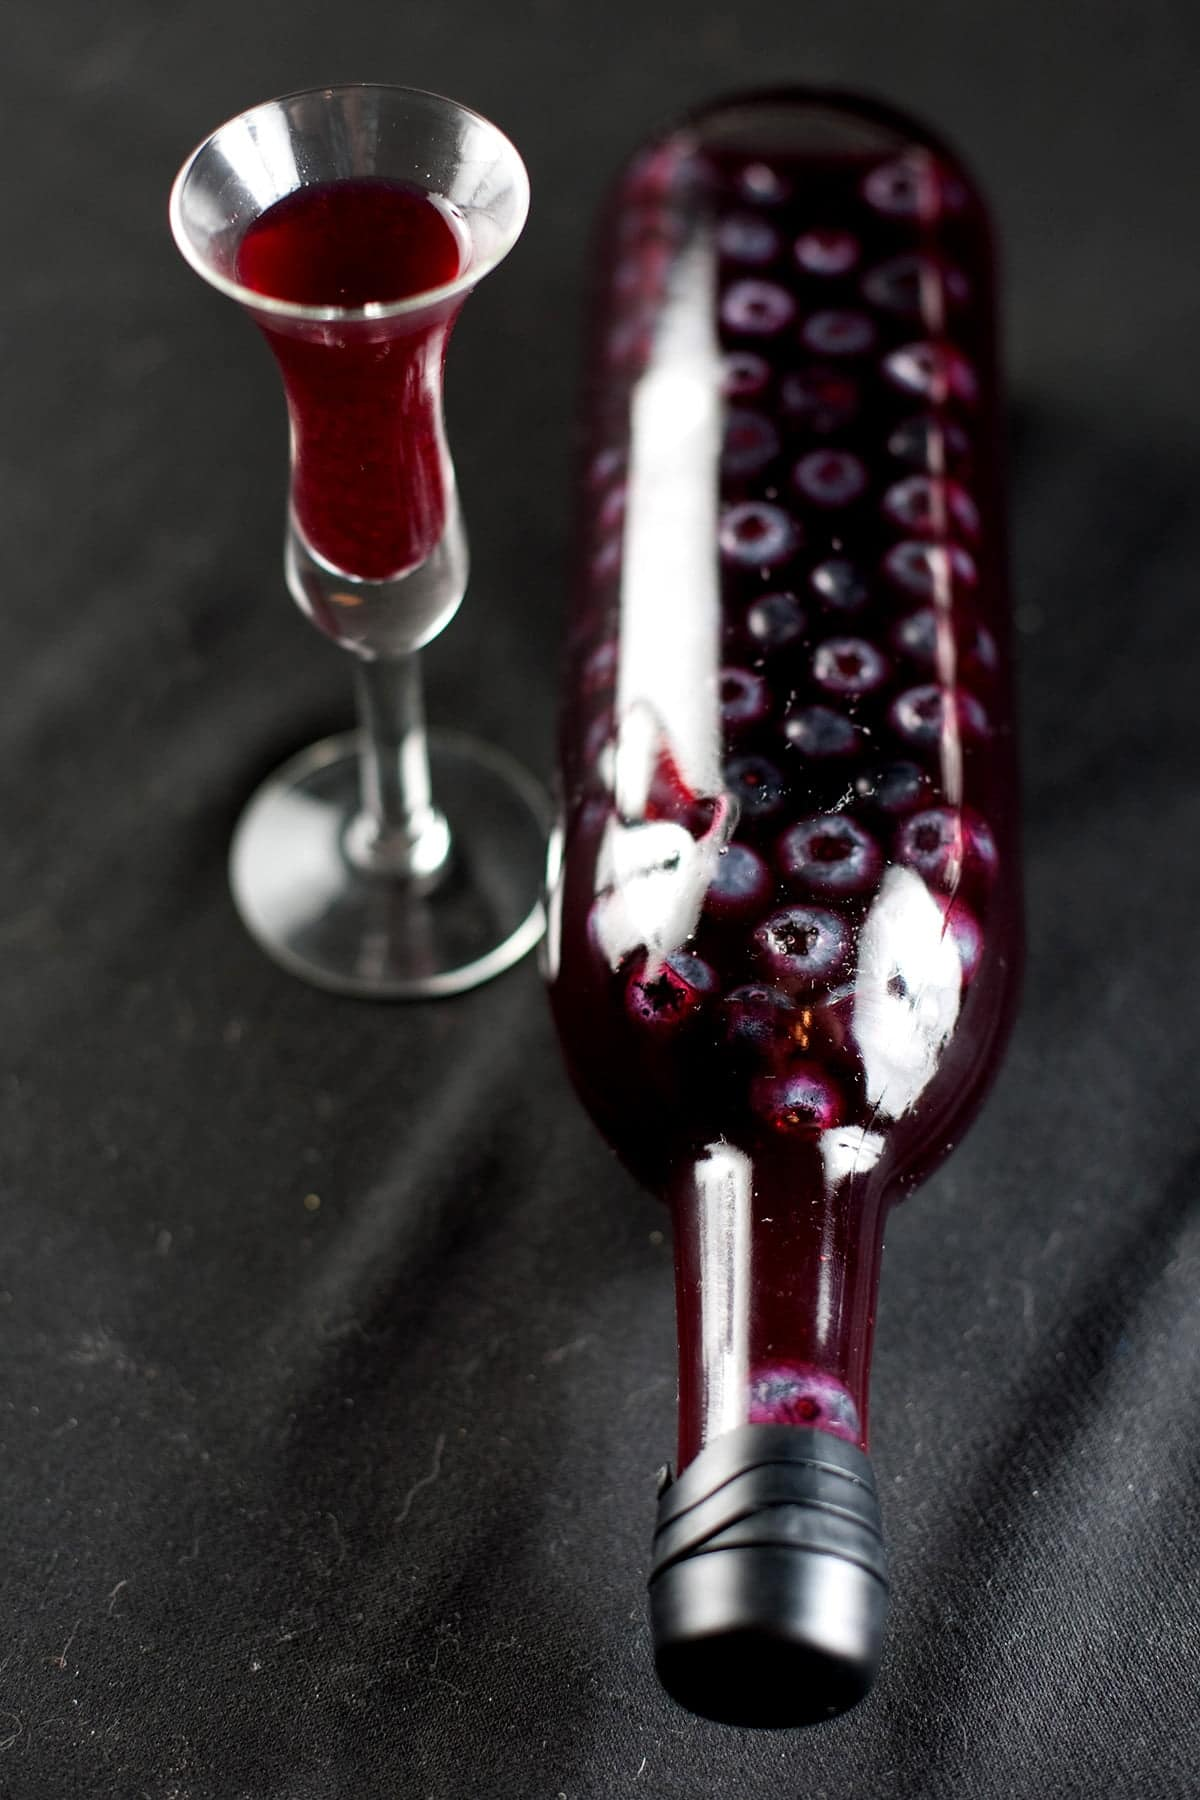 A wine bottled filled with dark purple liqueur and floating blueberries is pictured next to a fluted shot glass filled with the dark purple liquid.